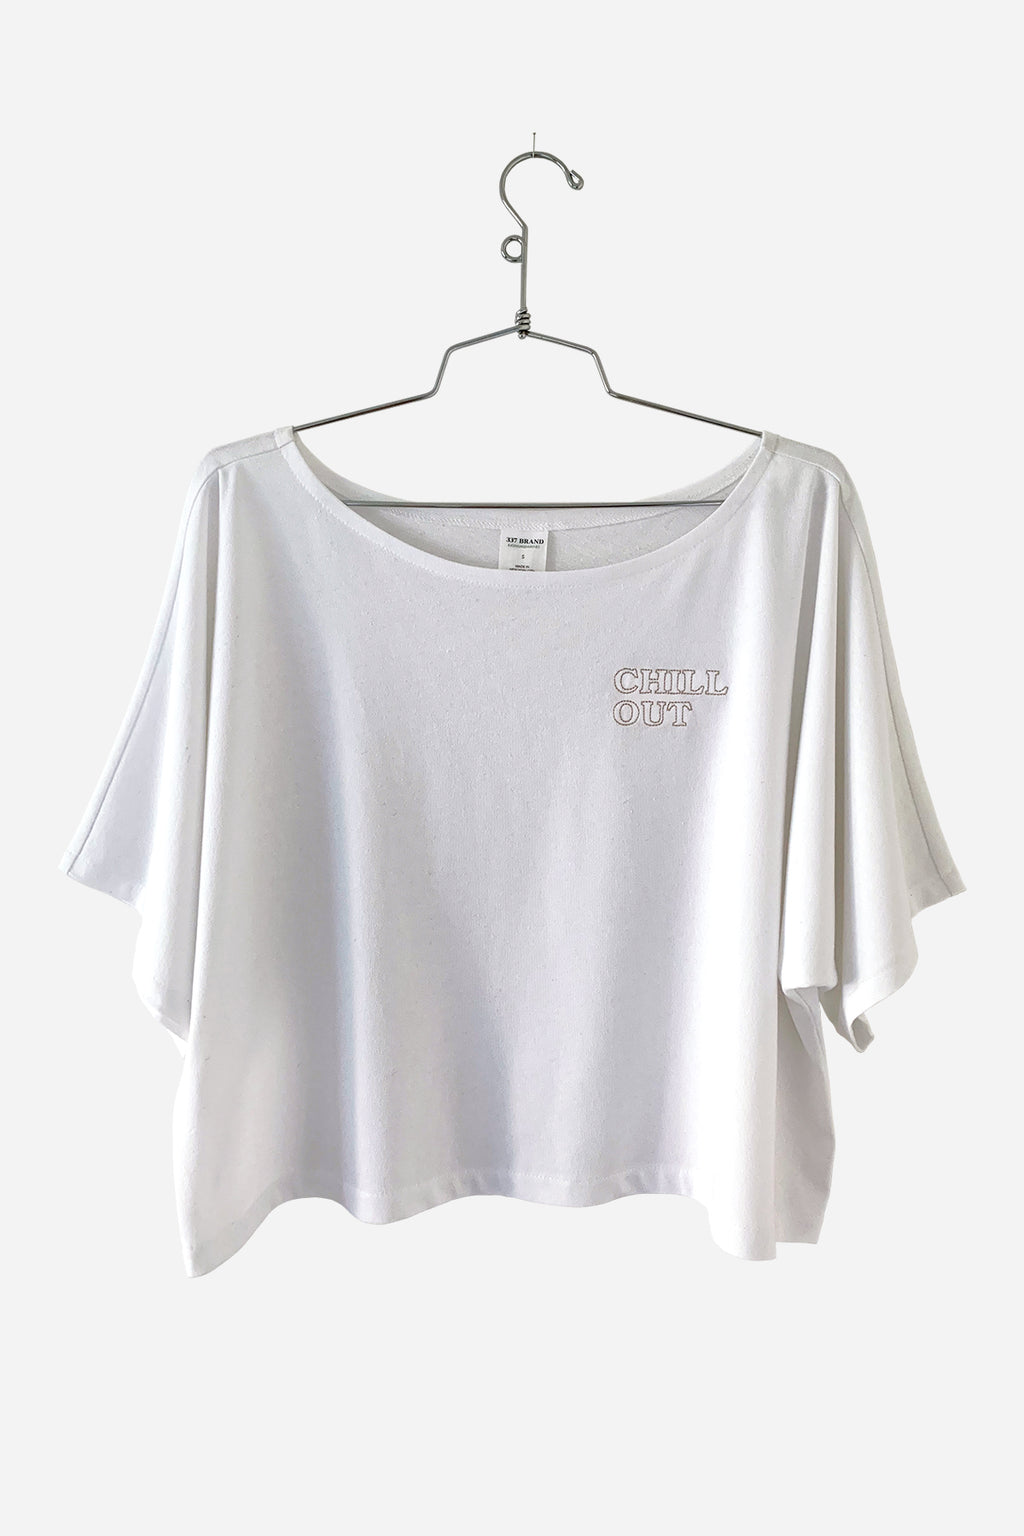 CHELSEA CROP TOP - 337 BRAND Women's Sustainable Clothing